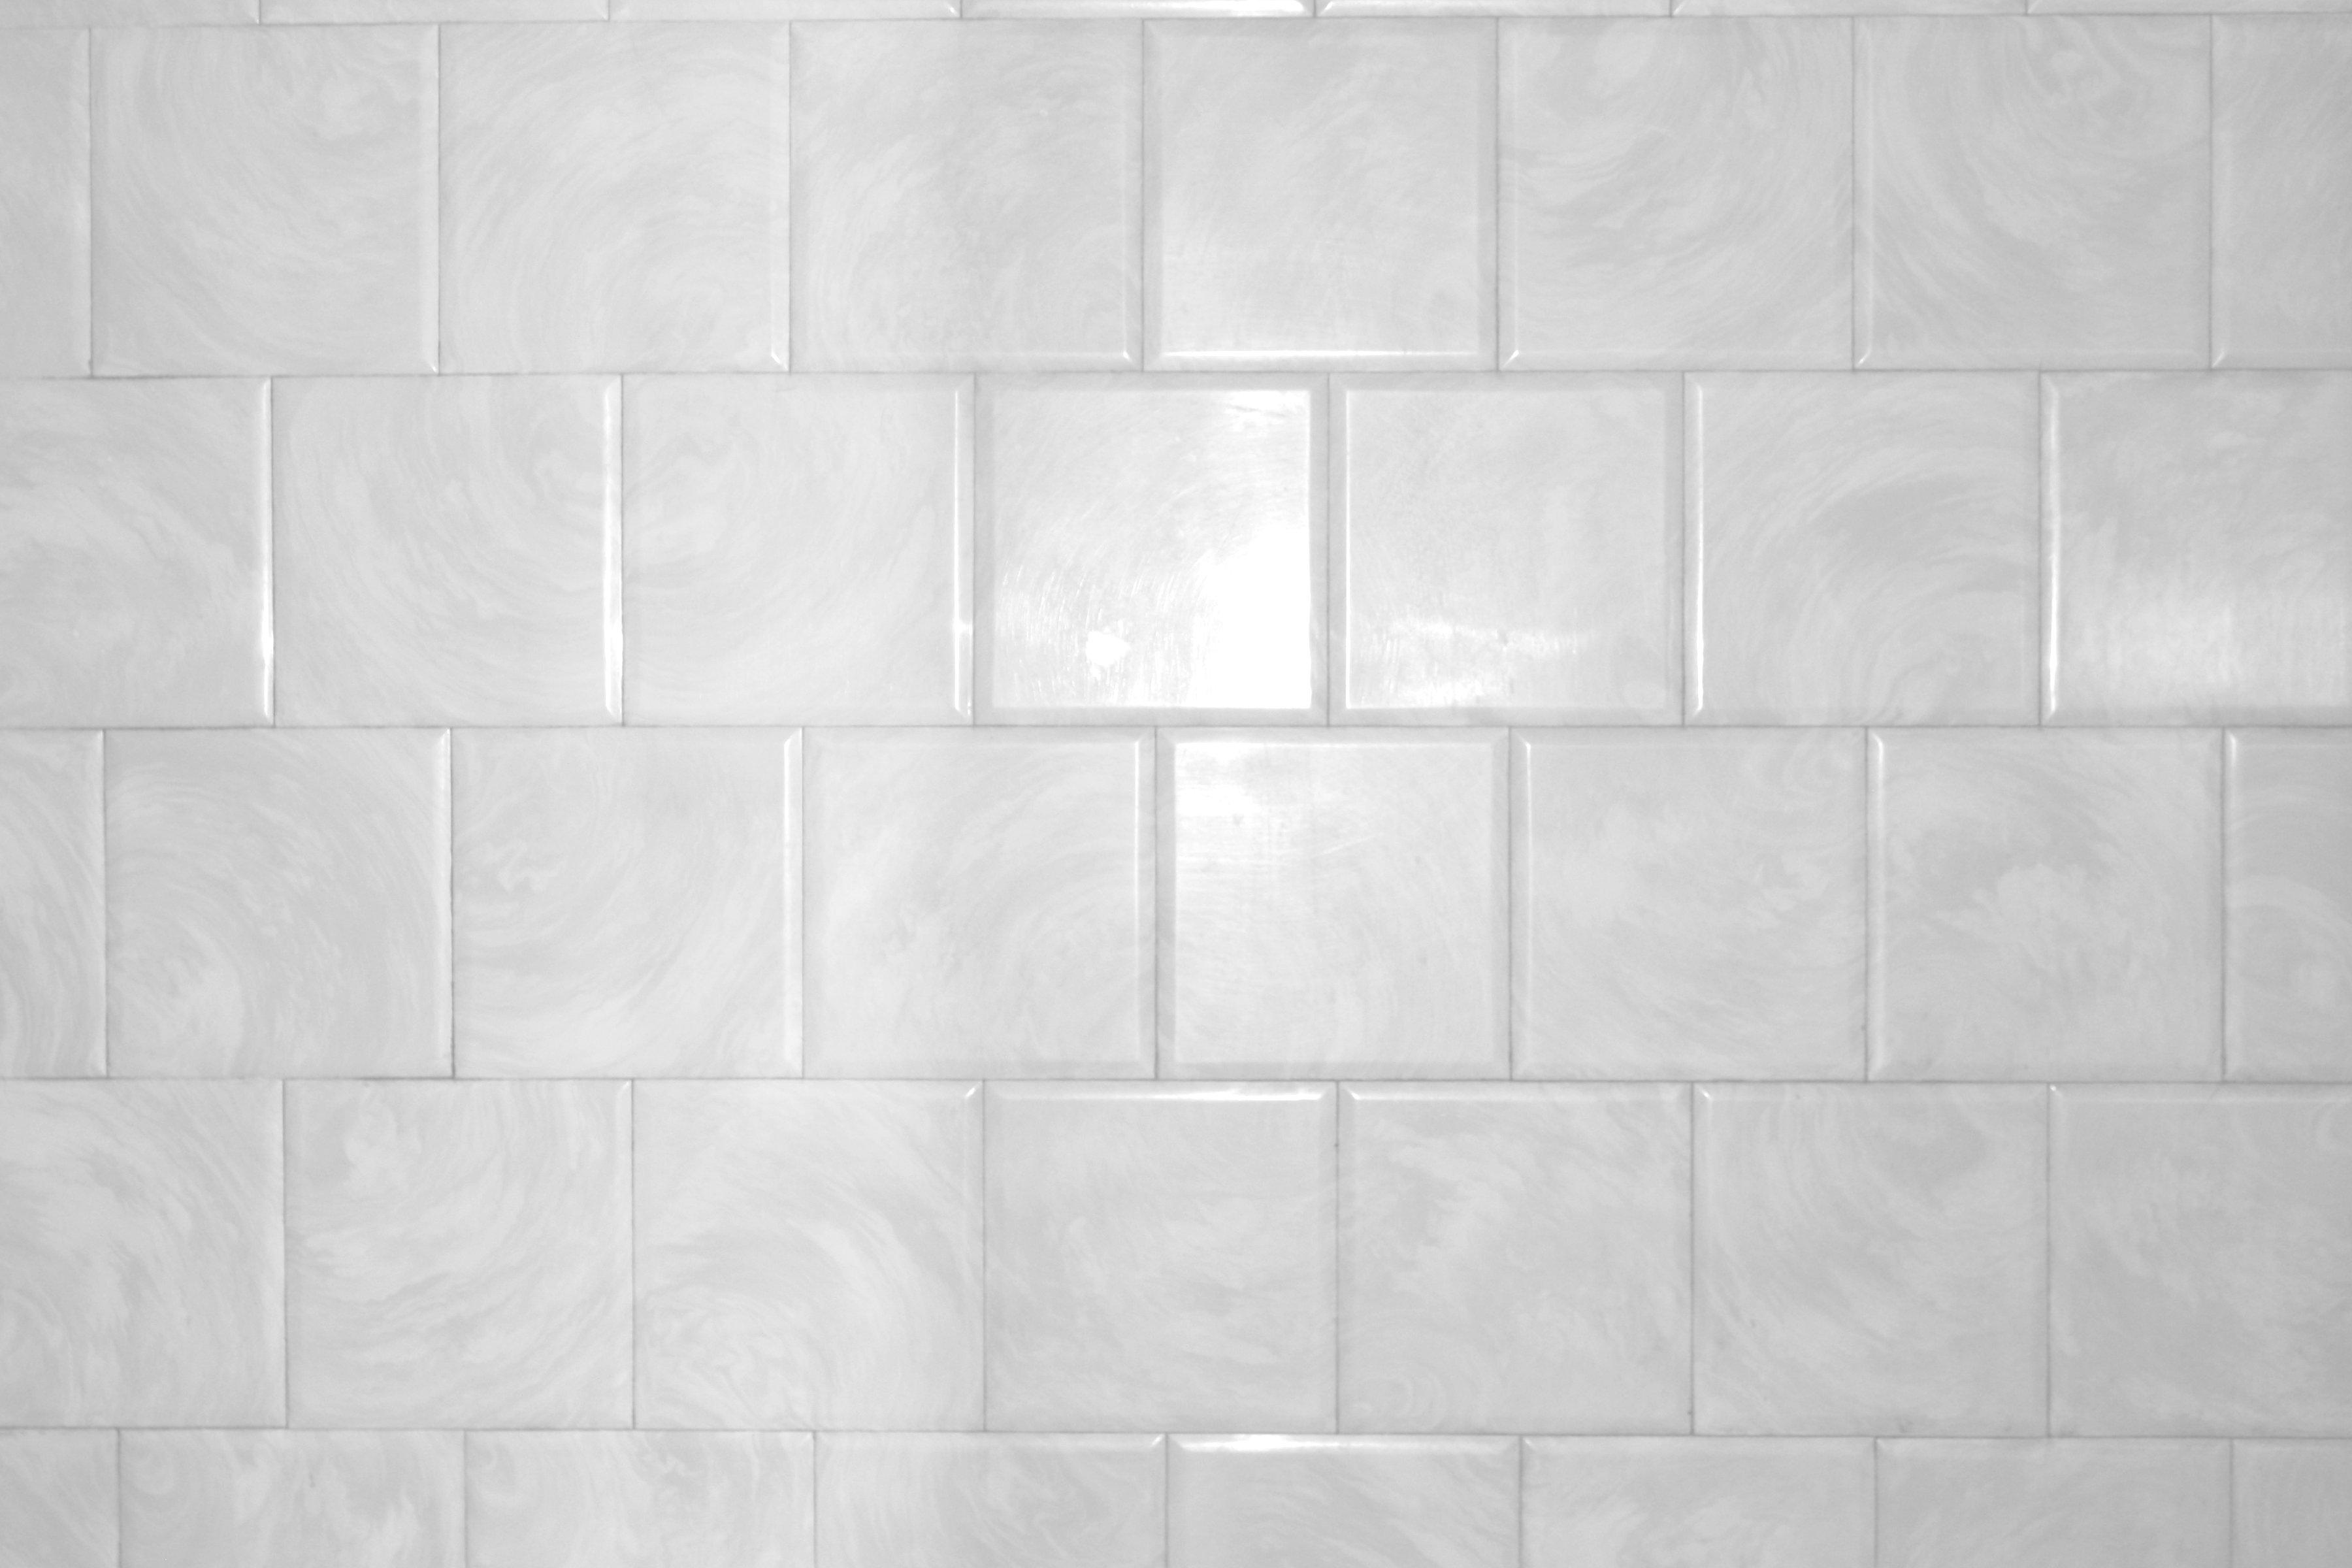 White Bathroom Tile With Swirl Pattern Texture Picture